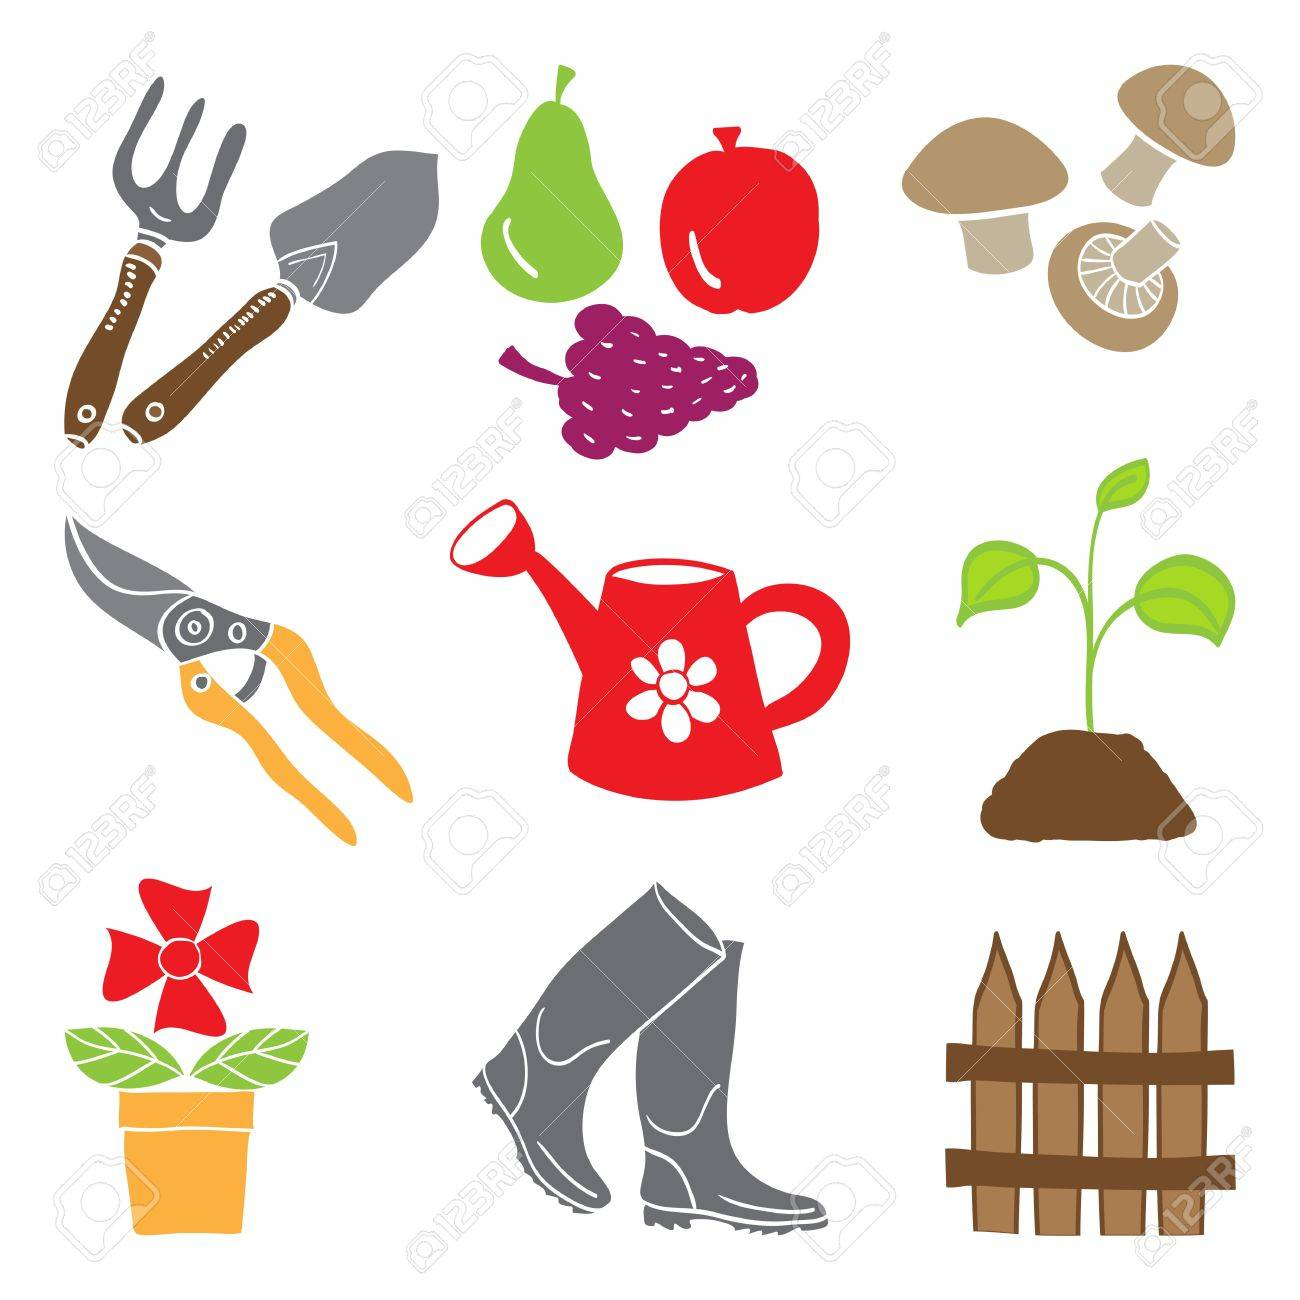 Colored gardening icons isolated on white background - tools and plants Stock Vector - 13675777